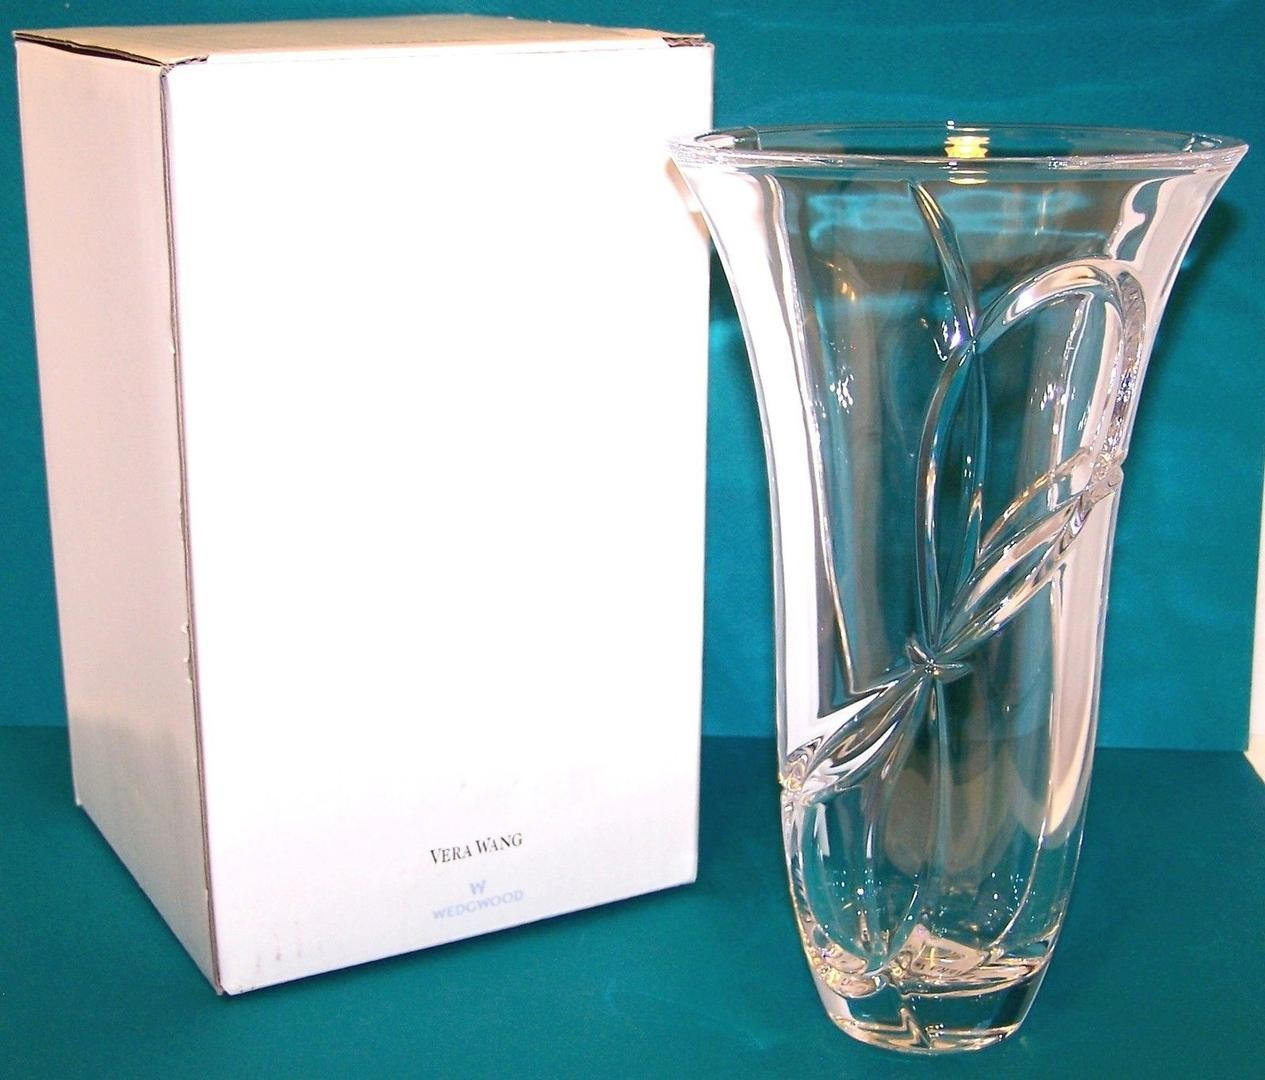 vera wang love knots vase of new vera wang by wedgwood love knots crystal 9 vase germany made intended for new vera wang by wedgwood love knots crystal 9 vase germany made discontinued 1819206530